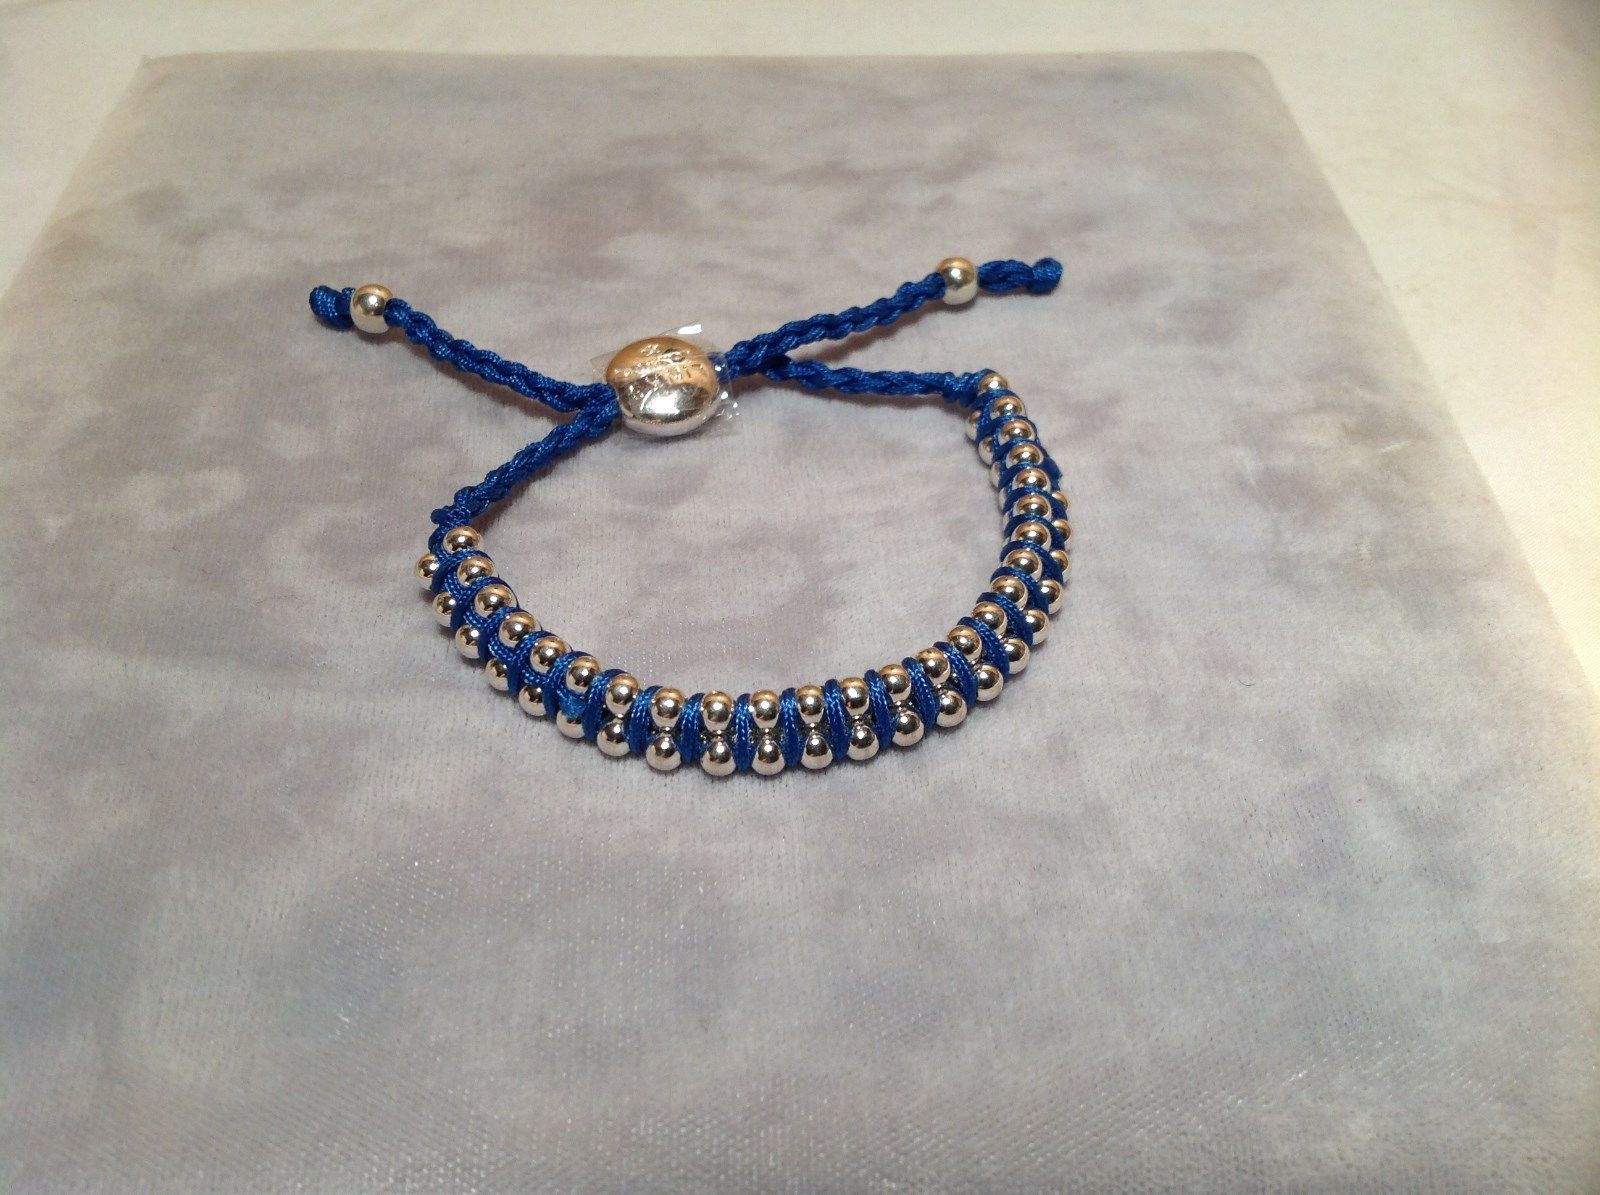 Dark Blue Small Tied String Bracelet Sliding Bead for Adjustment